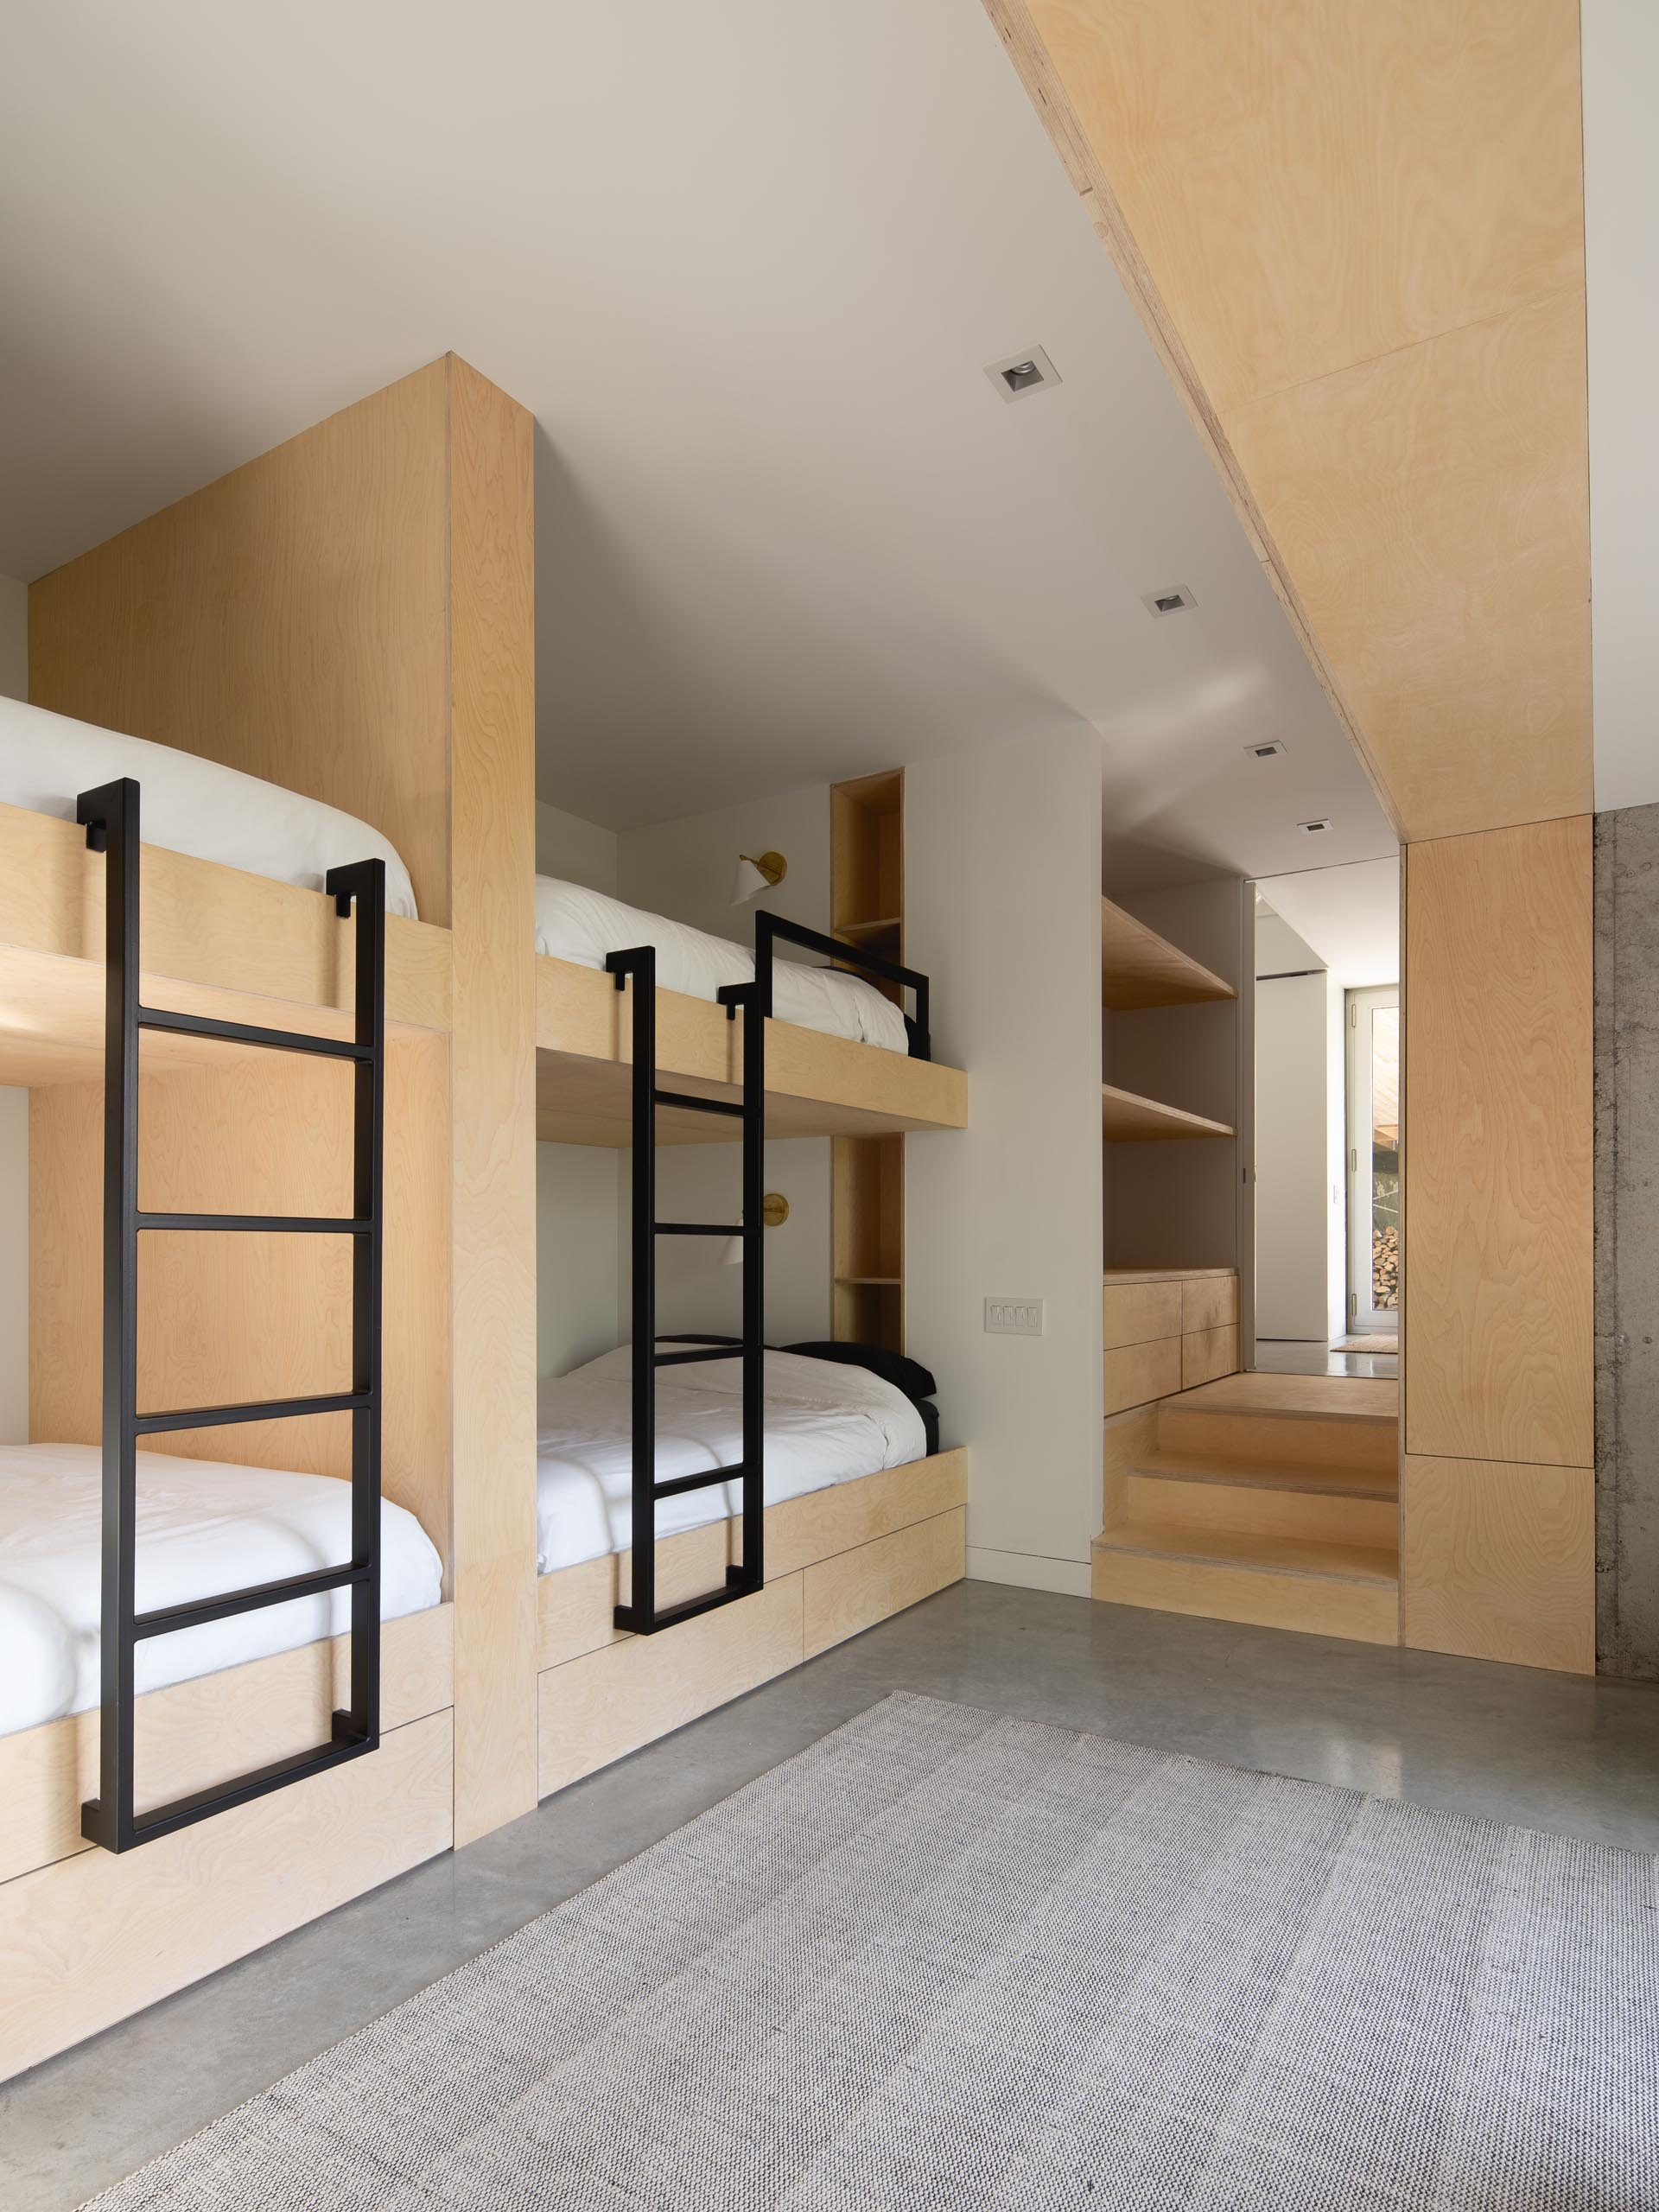 A modern bunkroom capable of sleeping up to 10 guests.